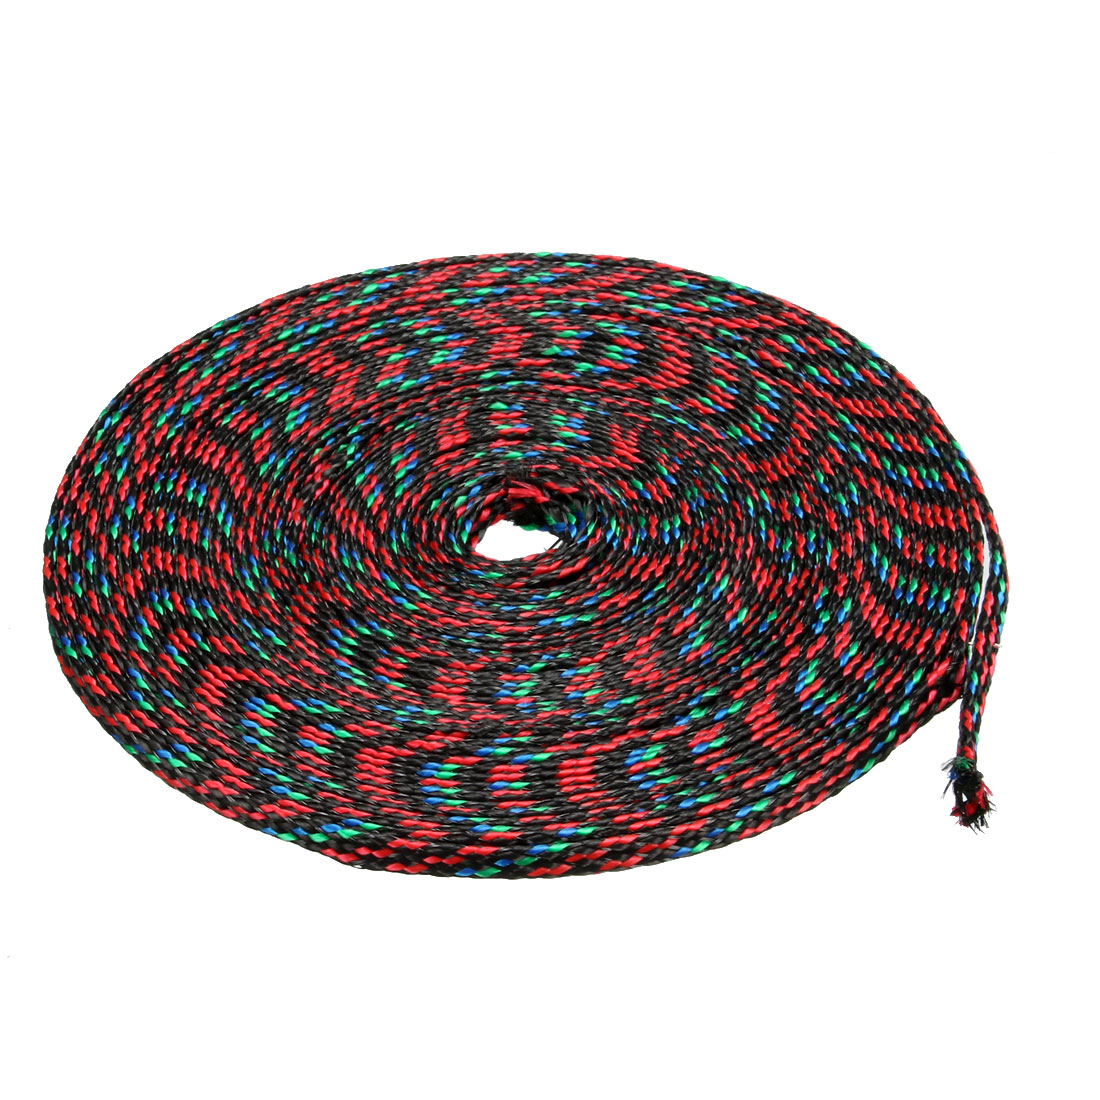 4mm Dia Tight Braided PET Expandable Sleeving Cable Wrap Sheath Multicolor 10M